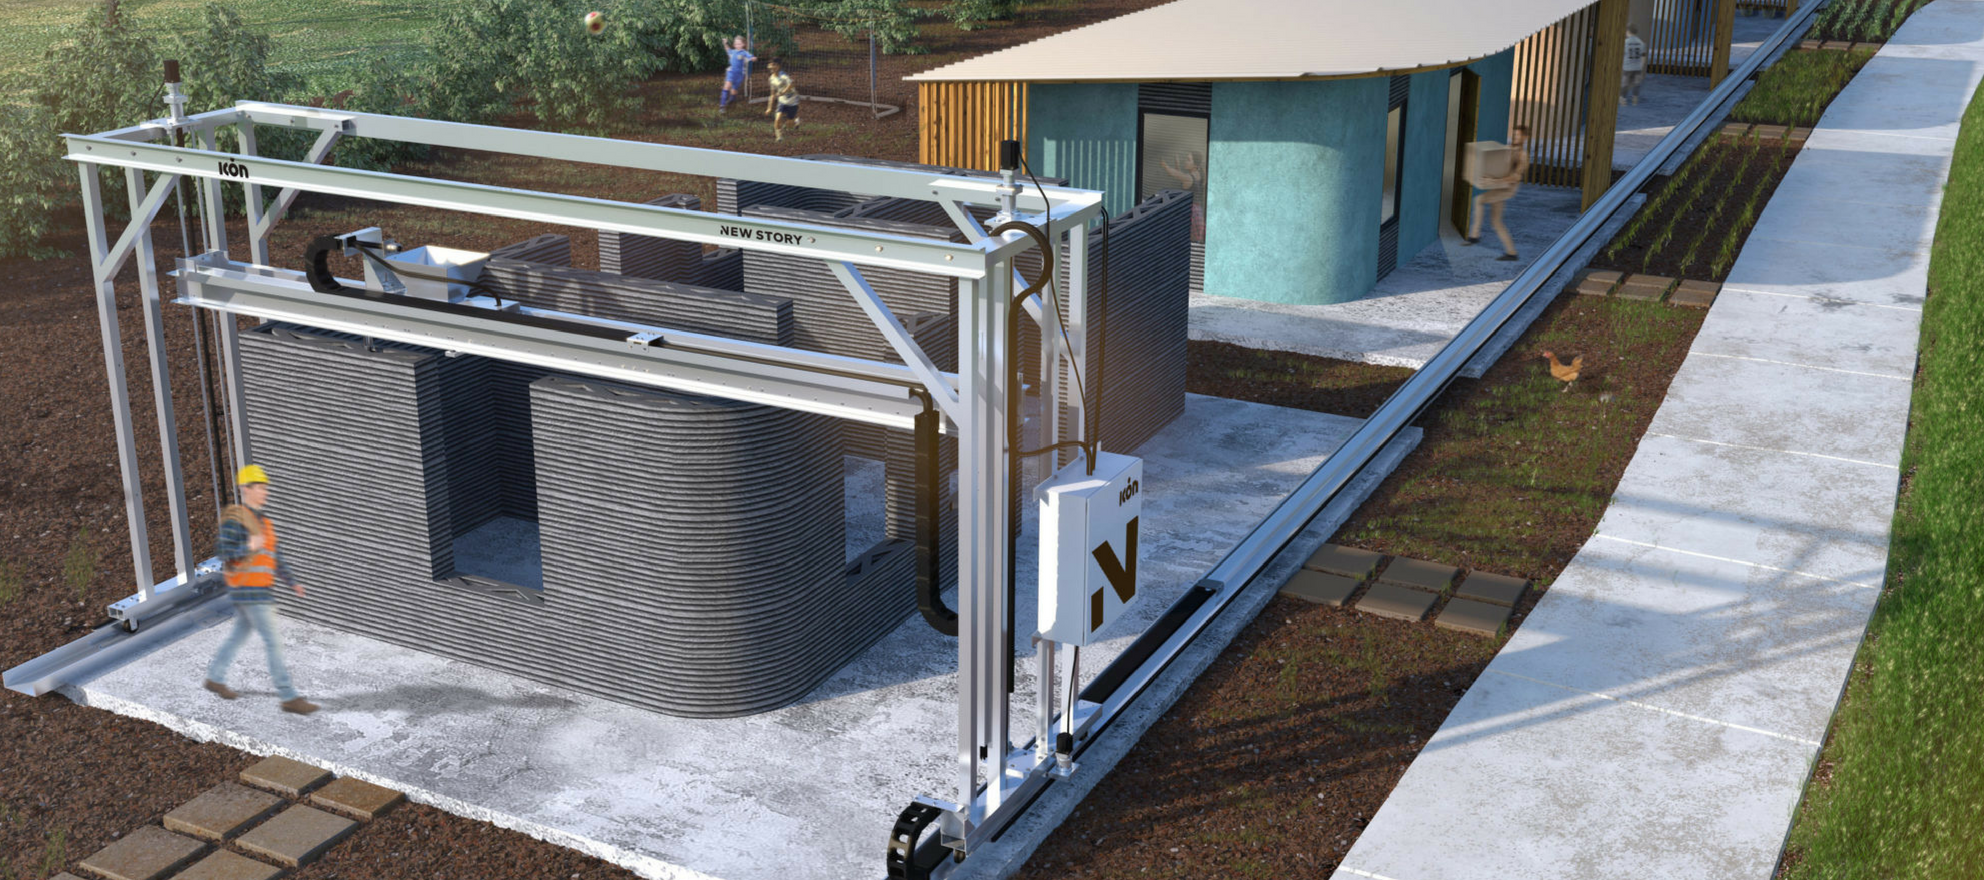 new story icon 3-d printed home